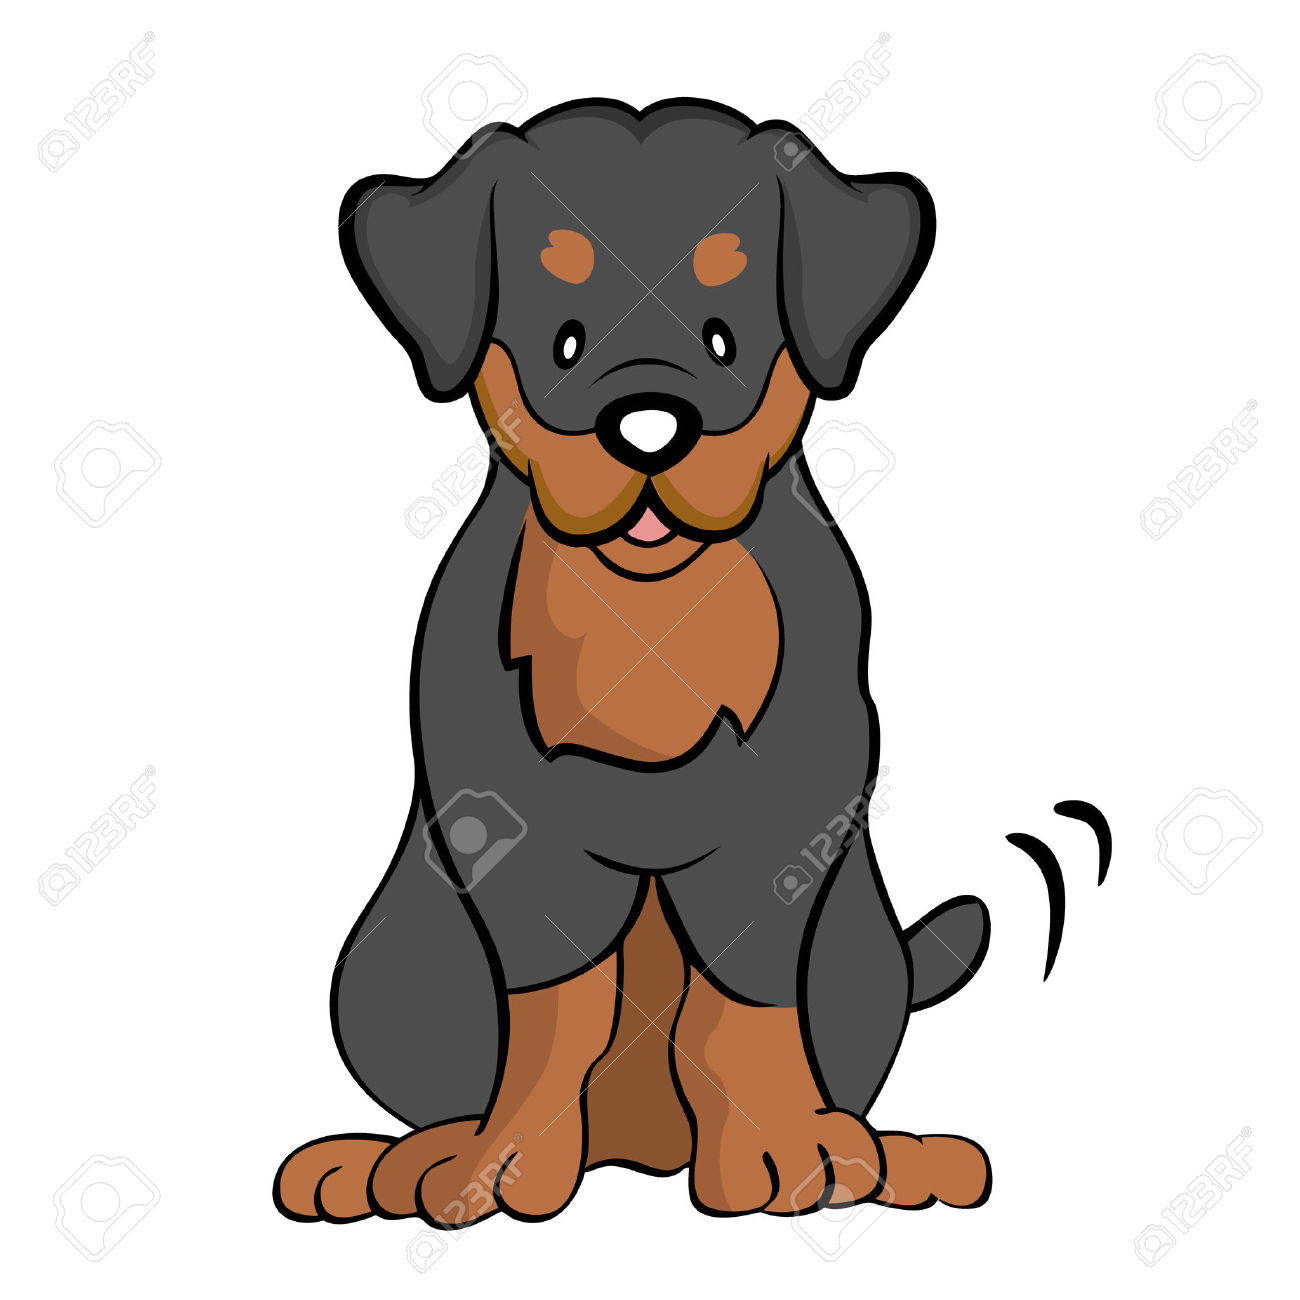 Rottweiler clipart #13, Download drawings